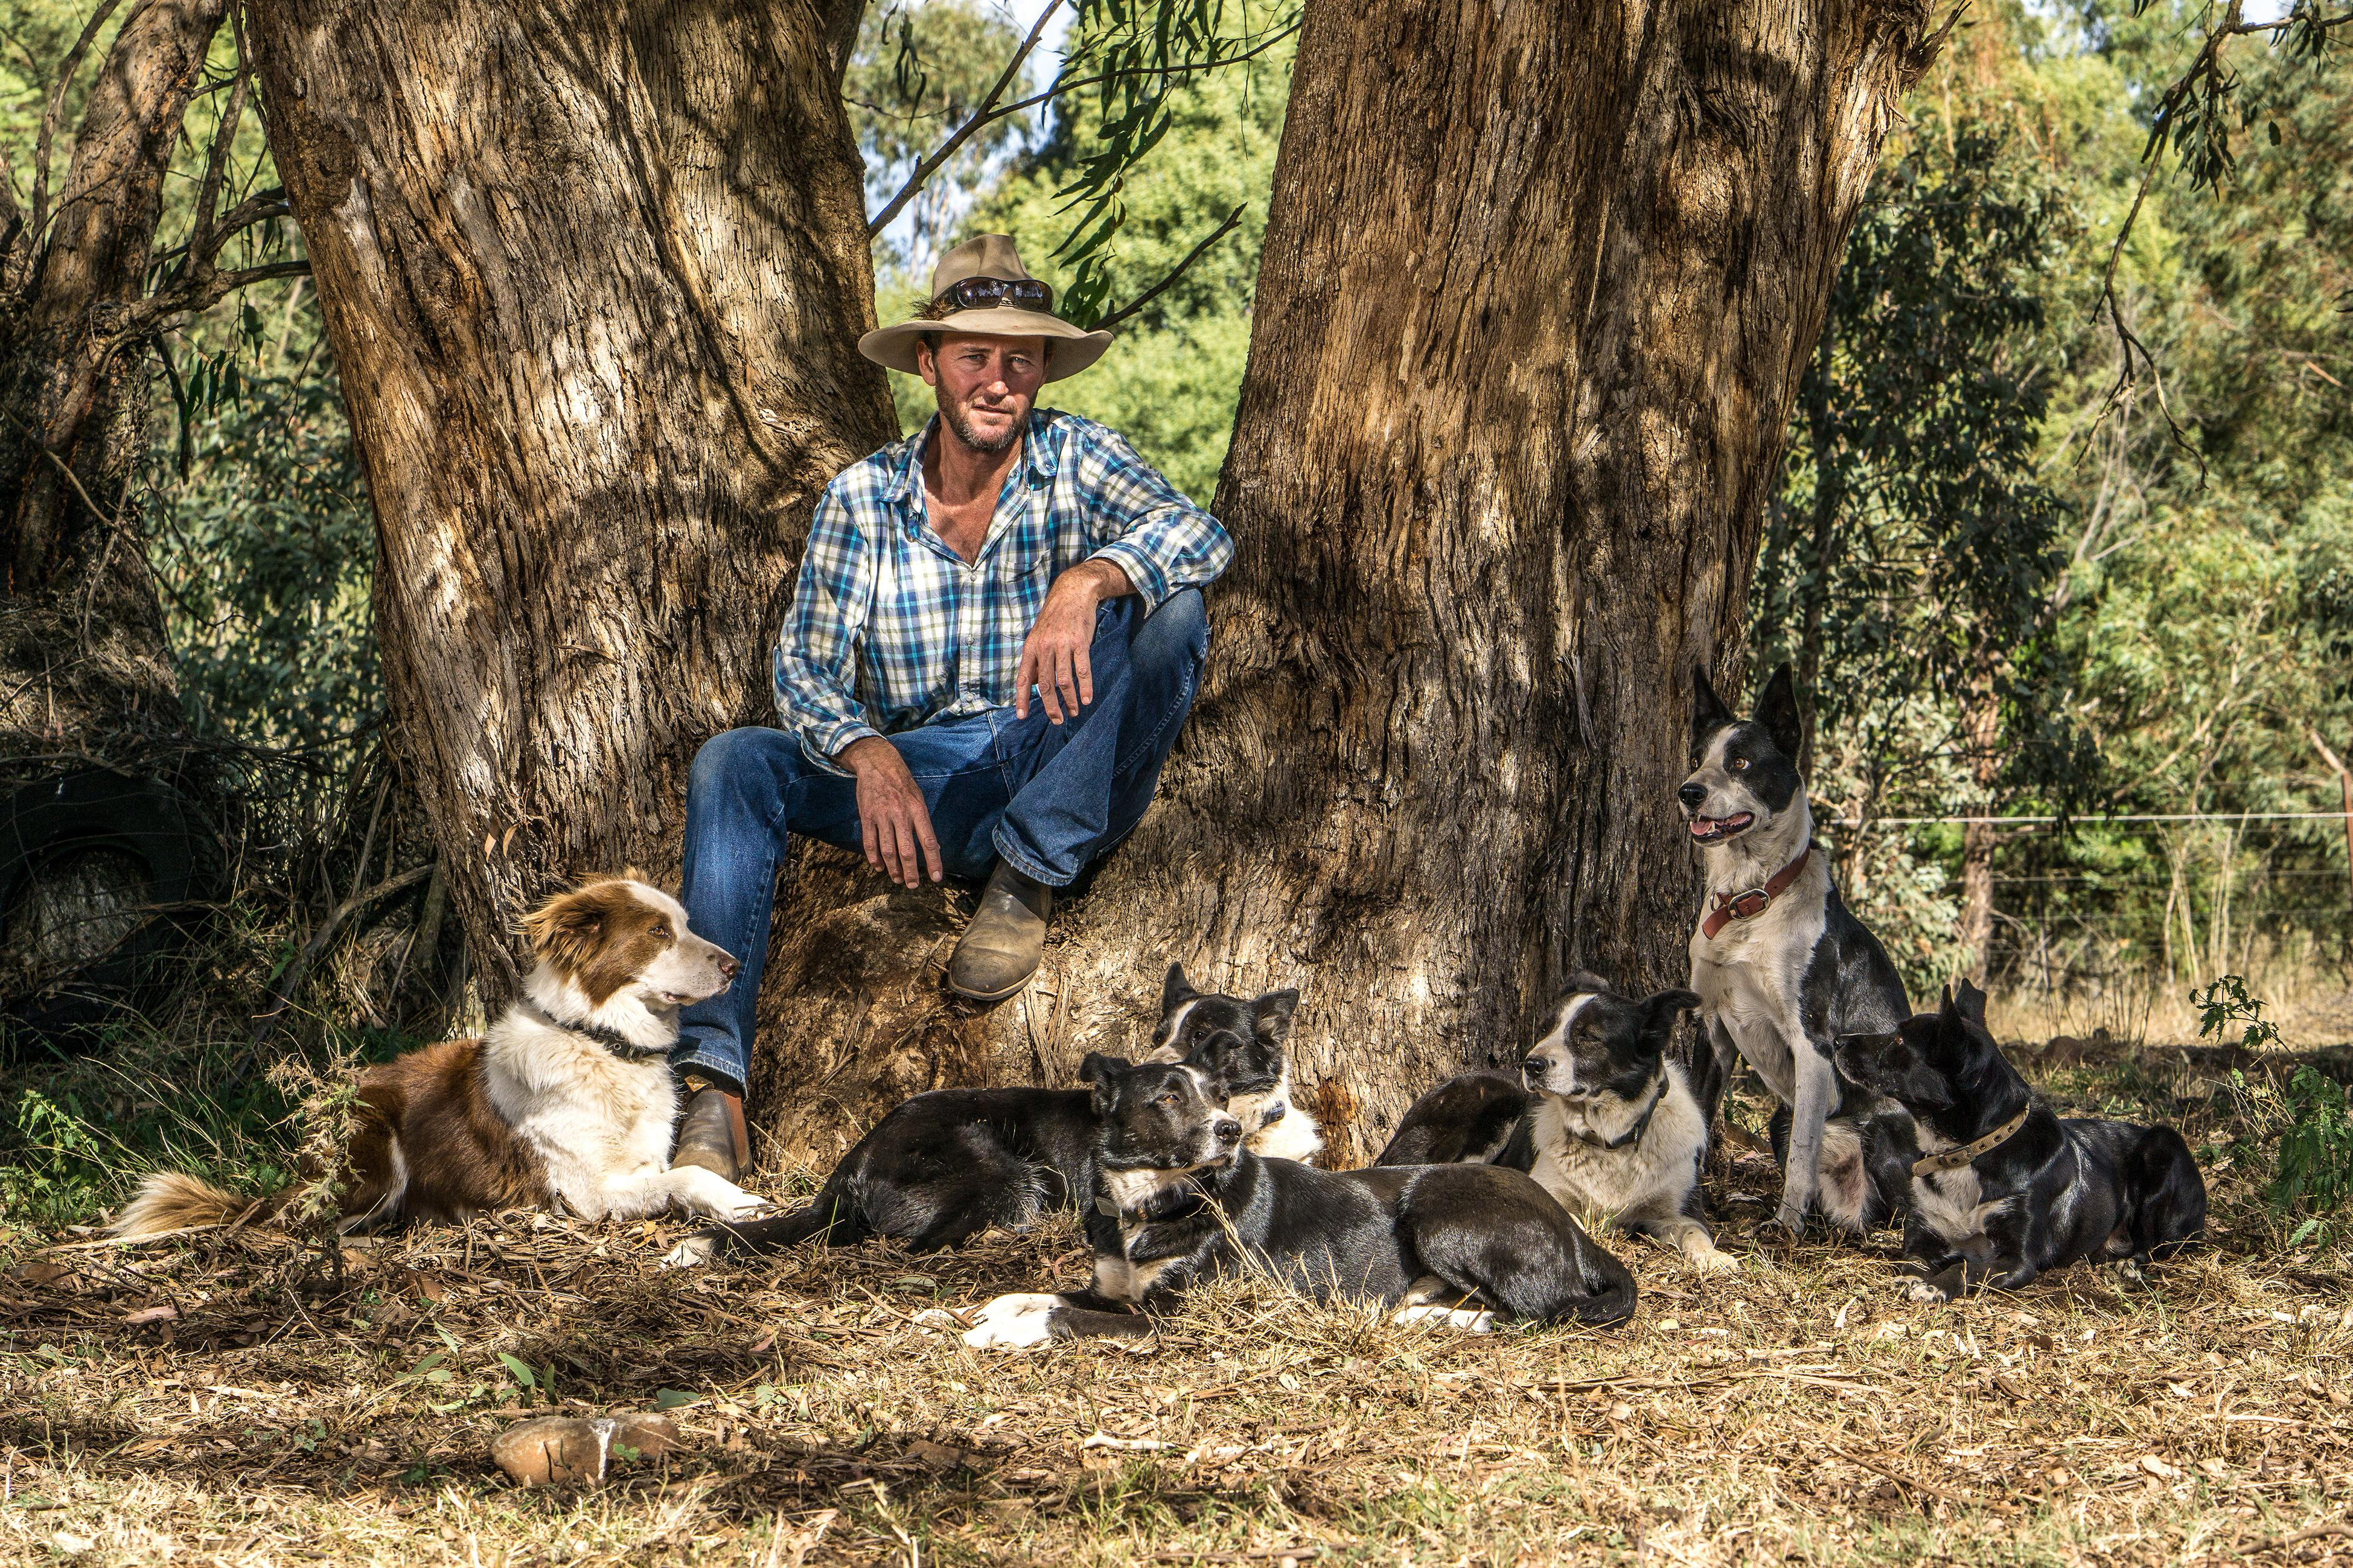 BackTrack boys: the jackaroo and his dogs giving at-risk kids a second chance